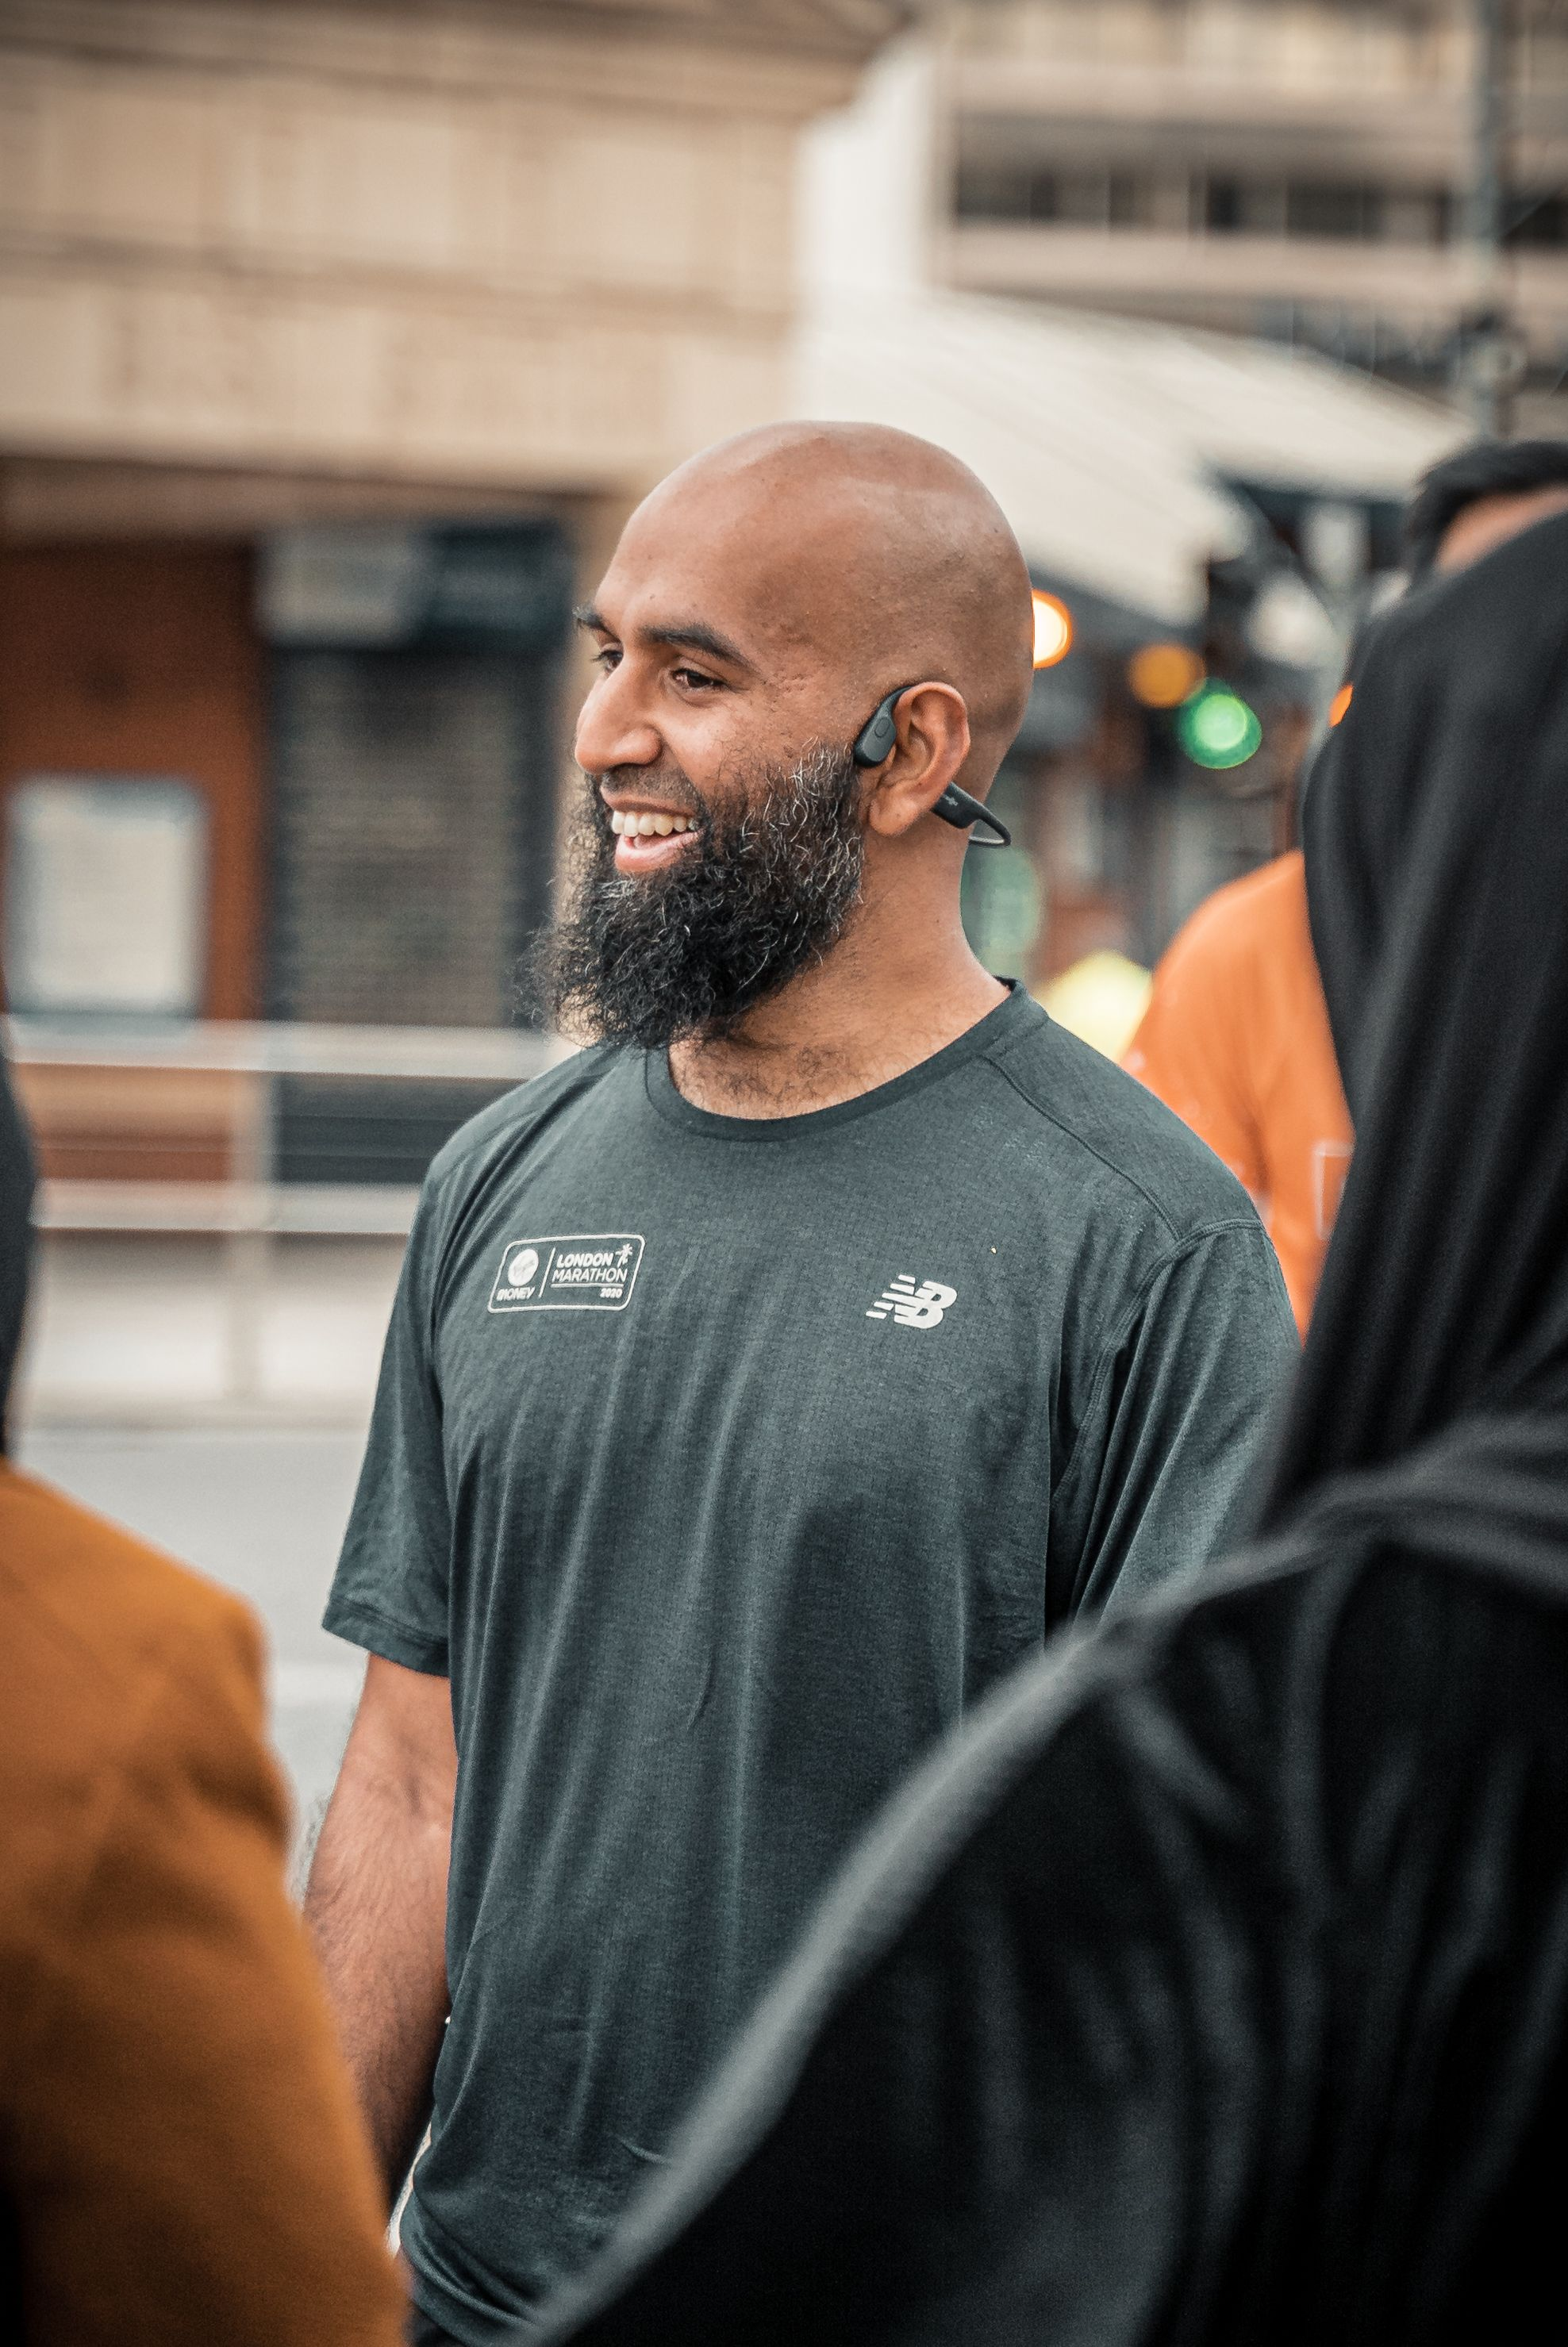 This runner ran 161.5 miles while fasting during Ramadan and has raised £55,000 for charity